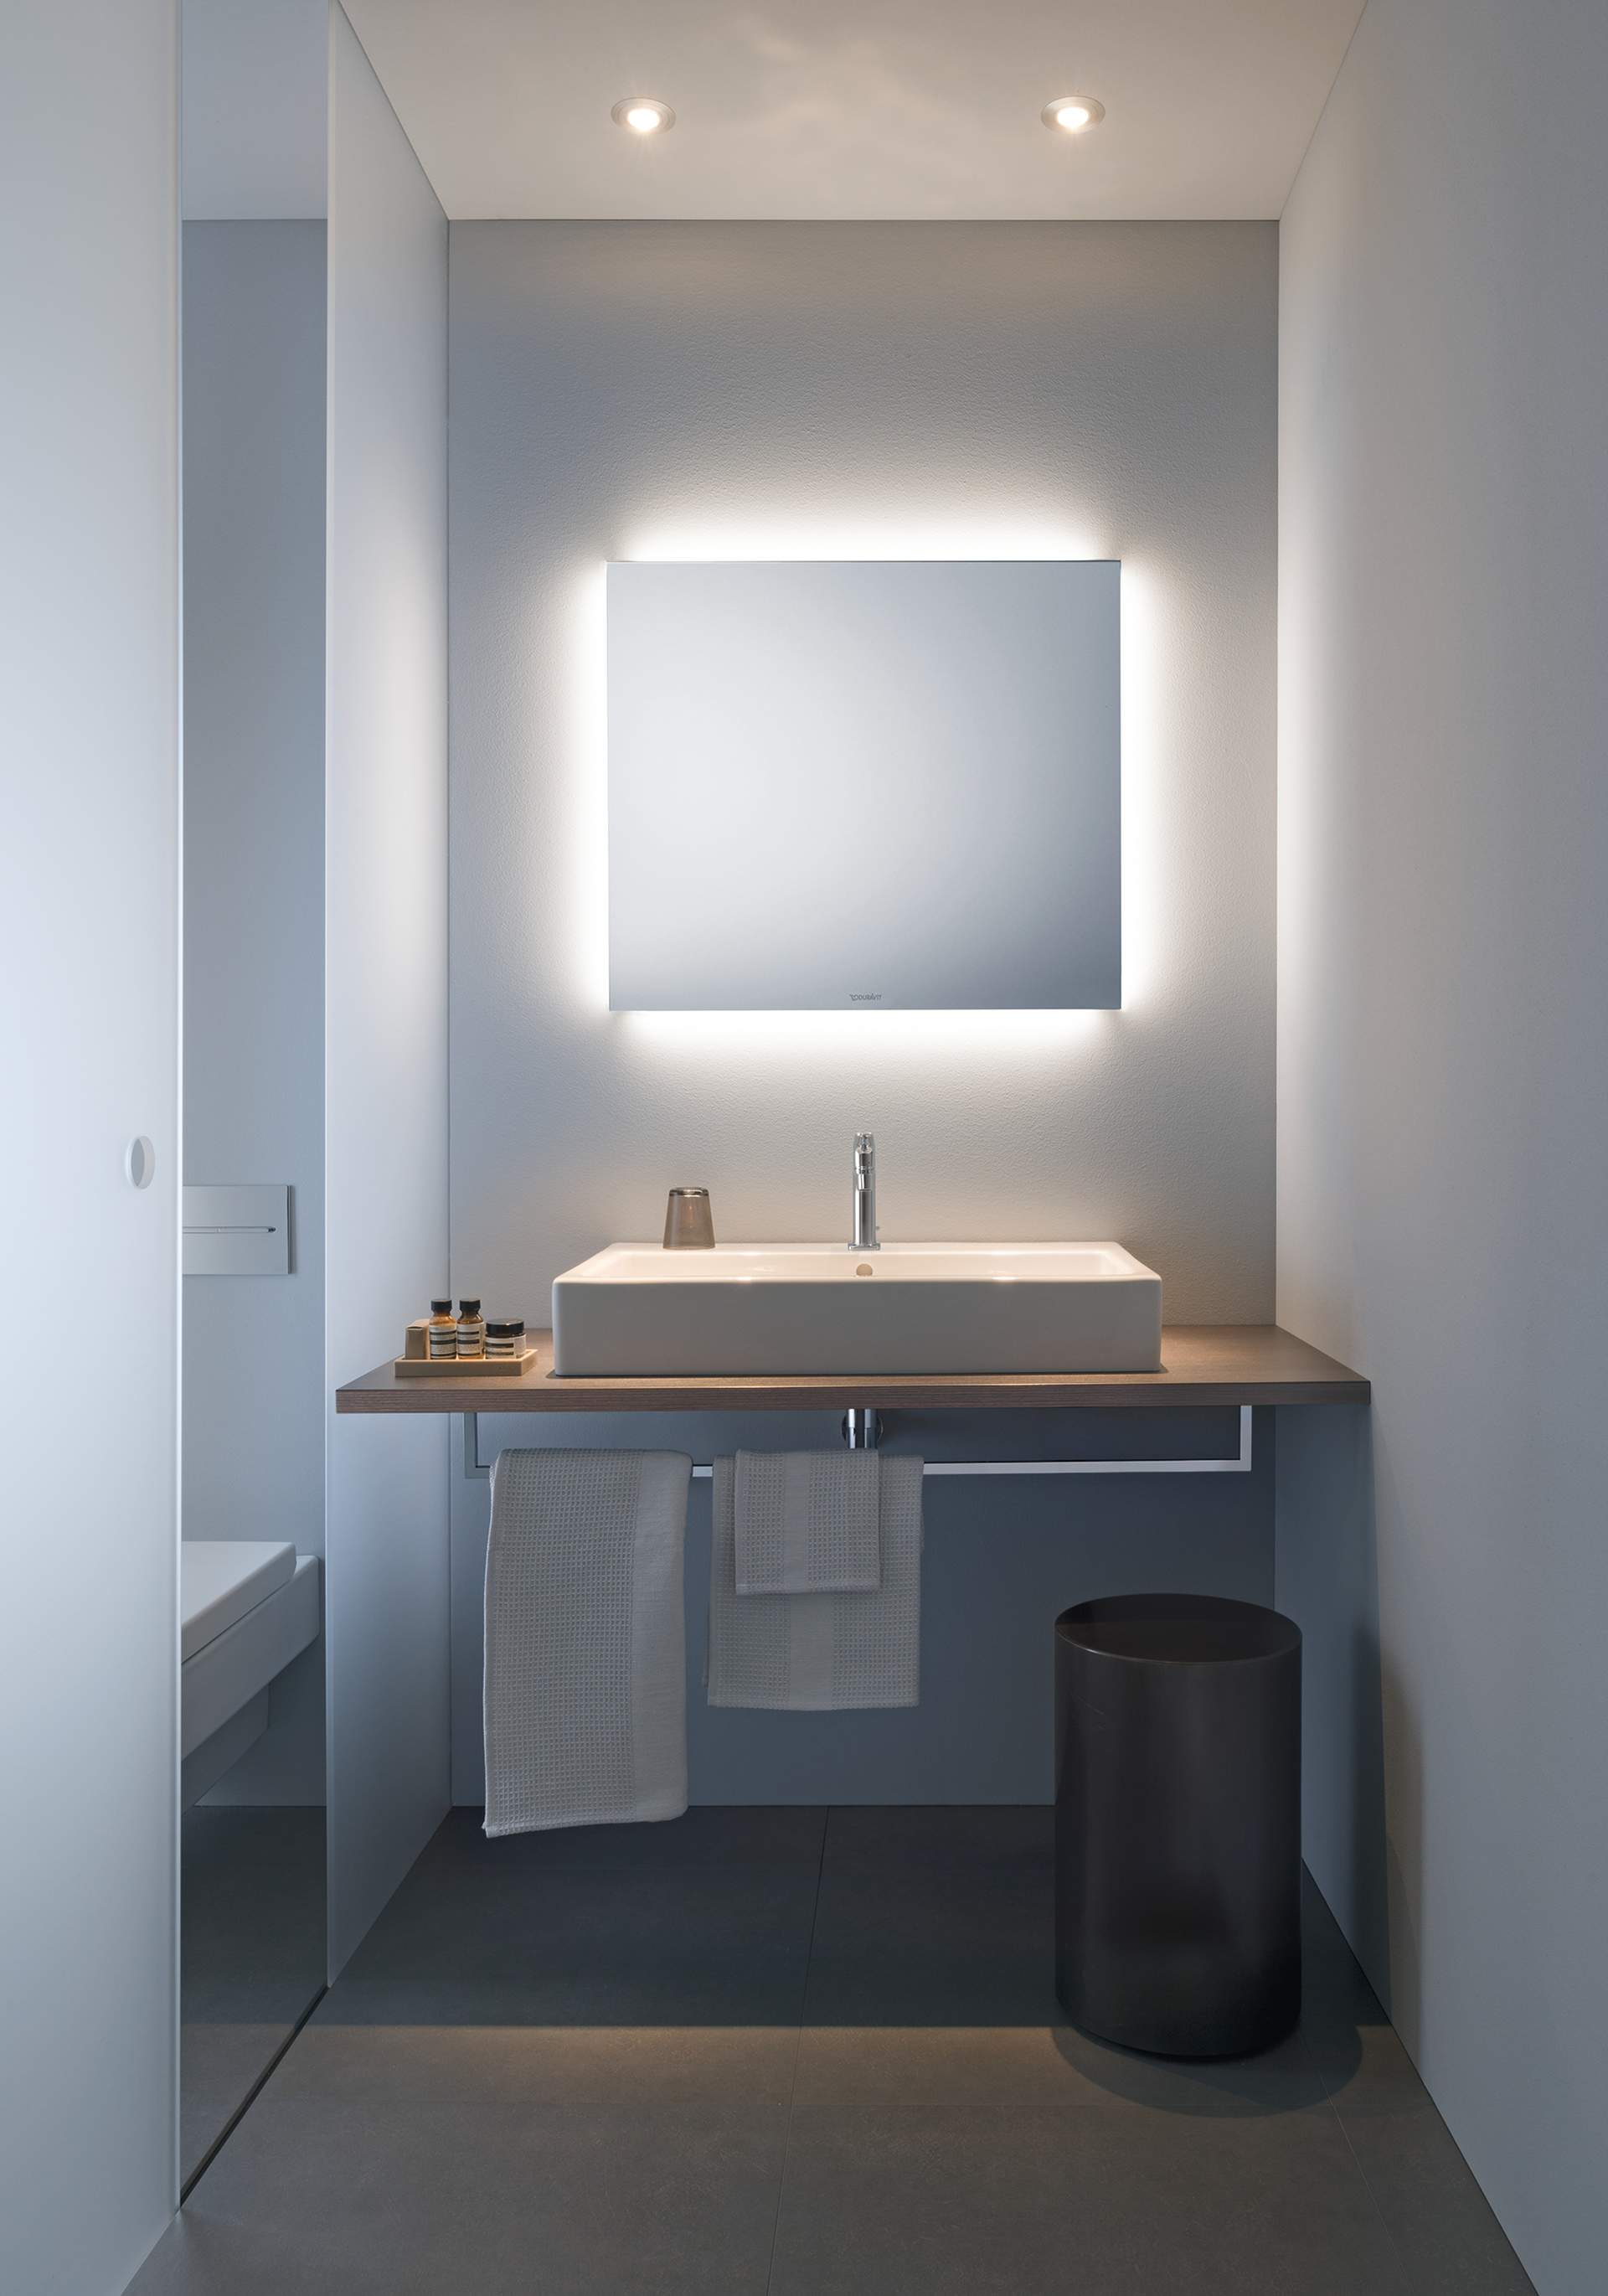 ... Mirror Cabinets Have Glass Shelves. More Comfort Offers An Open Shelf  That Can Be Added To Create A Place For All Items That Are Needed On A  Daily Basis ...